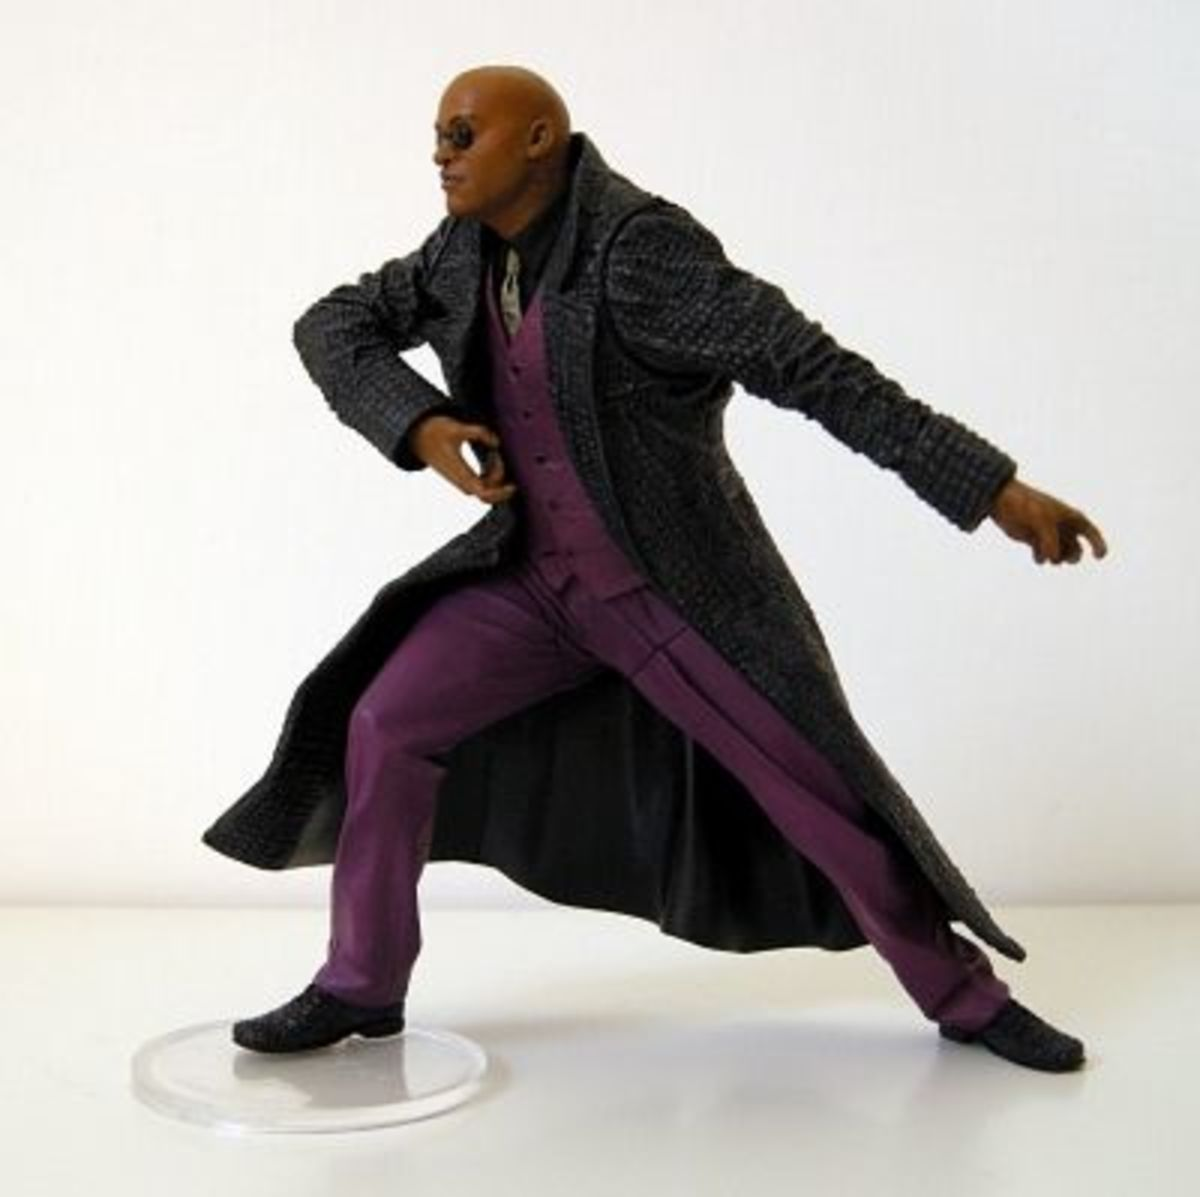 Protech display stands are also perfect to help balance larger scale action figures